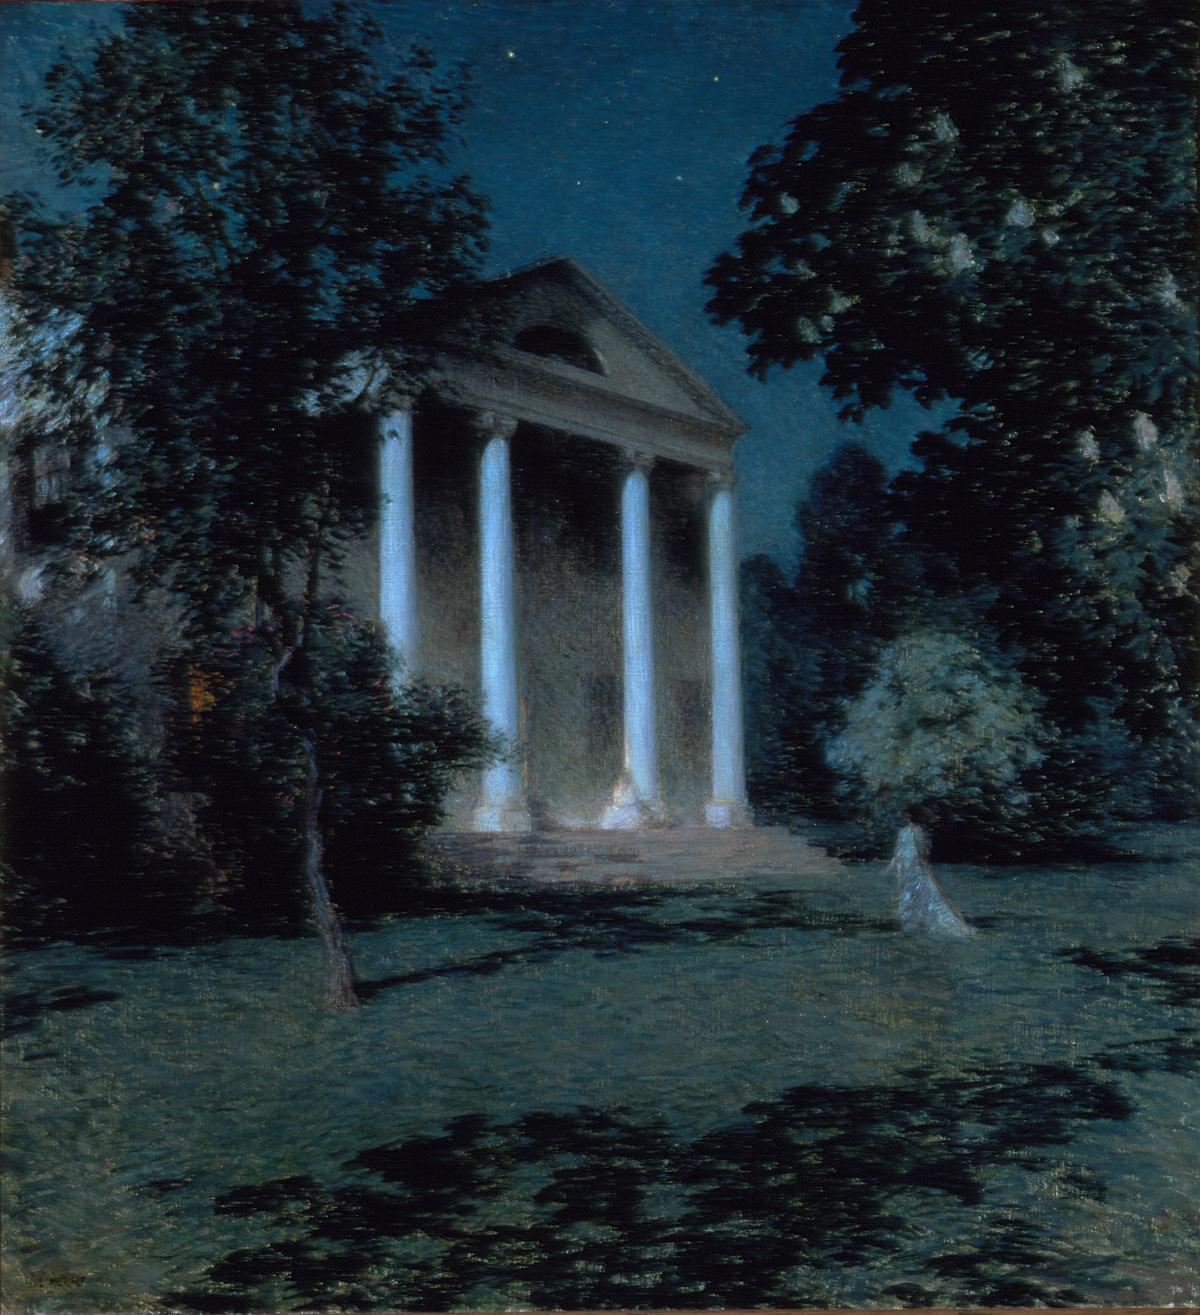 Painting of a house with columns at night